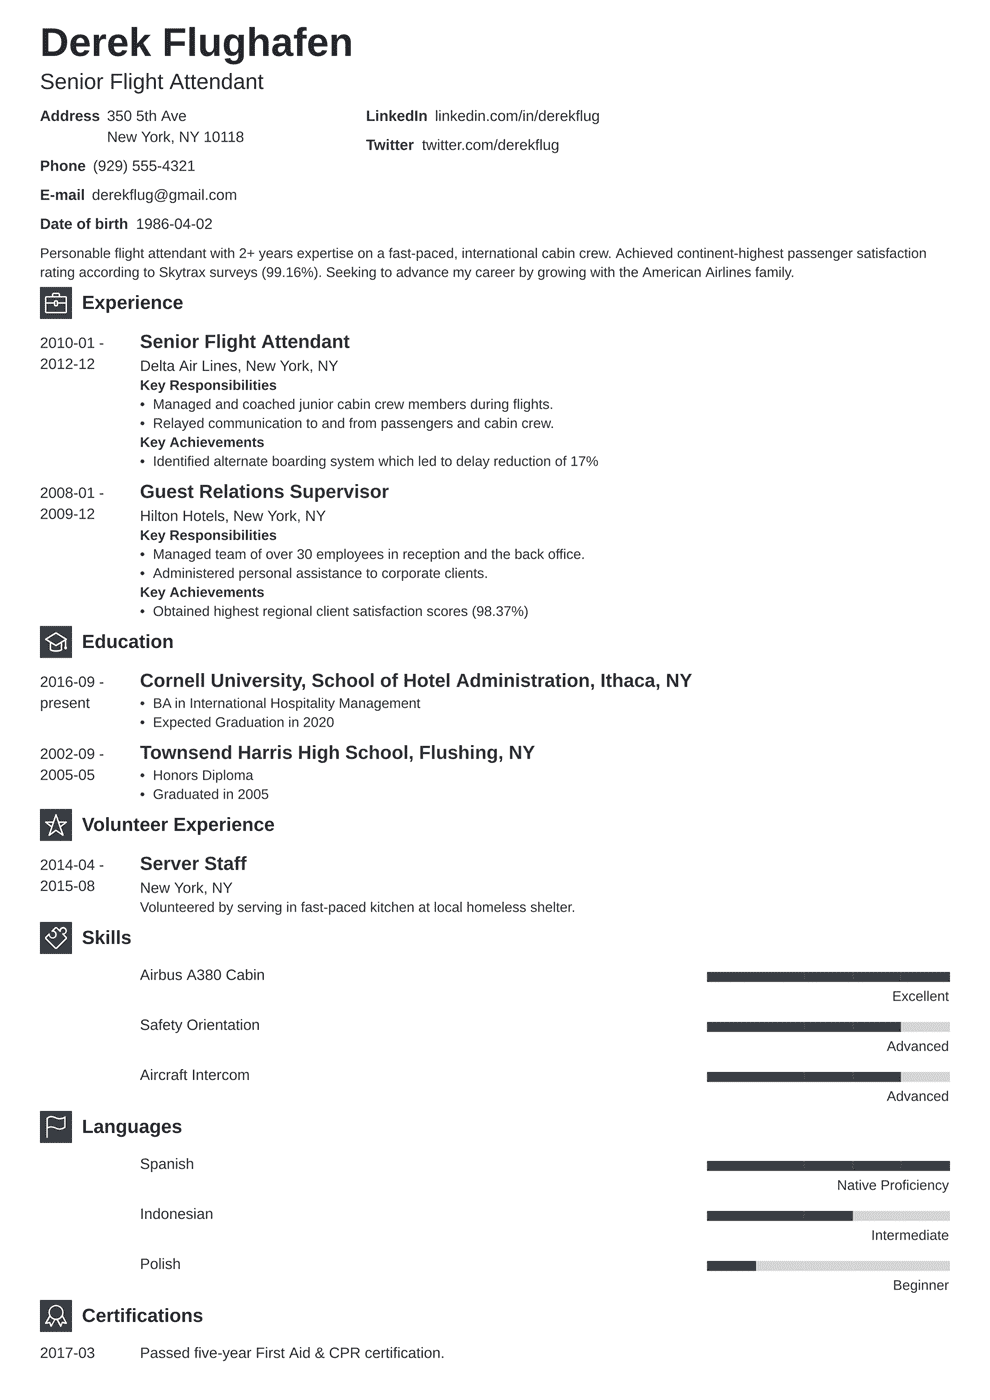 Flight Attendant Resume Sample [Also With No Experience]